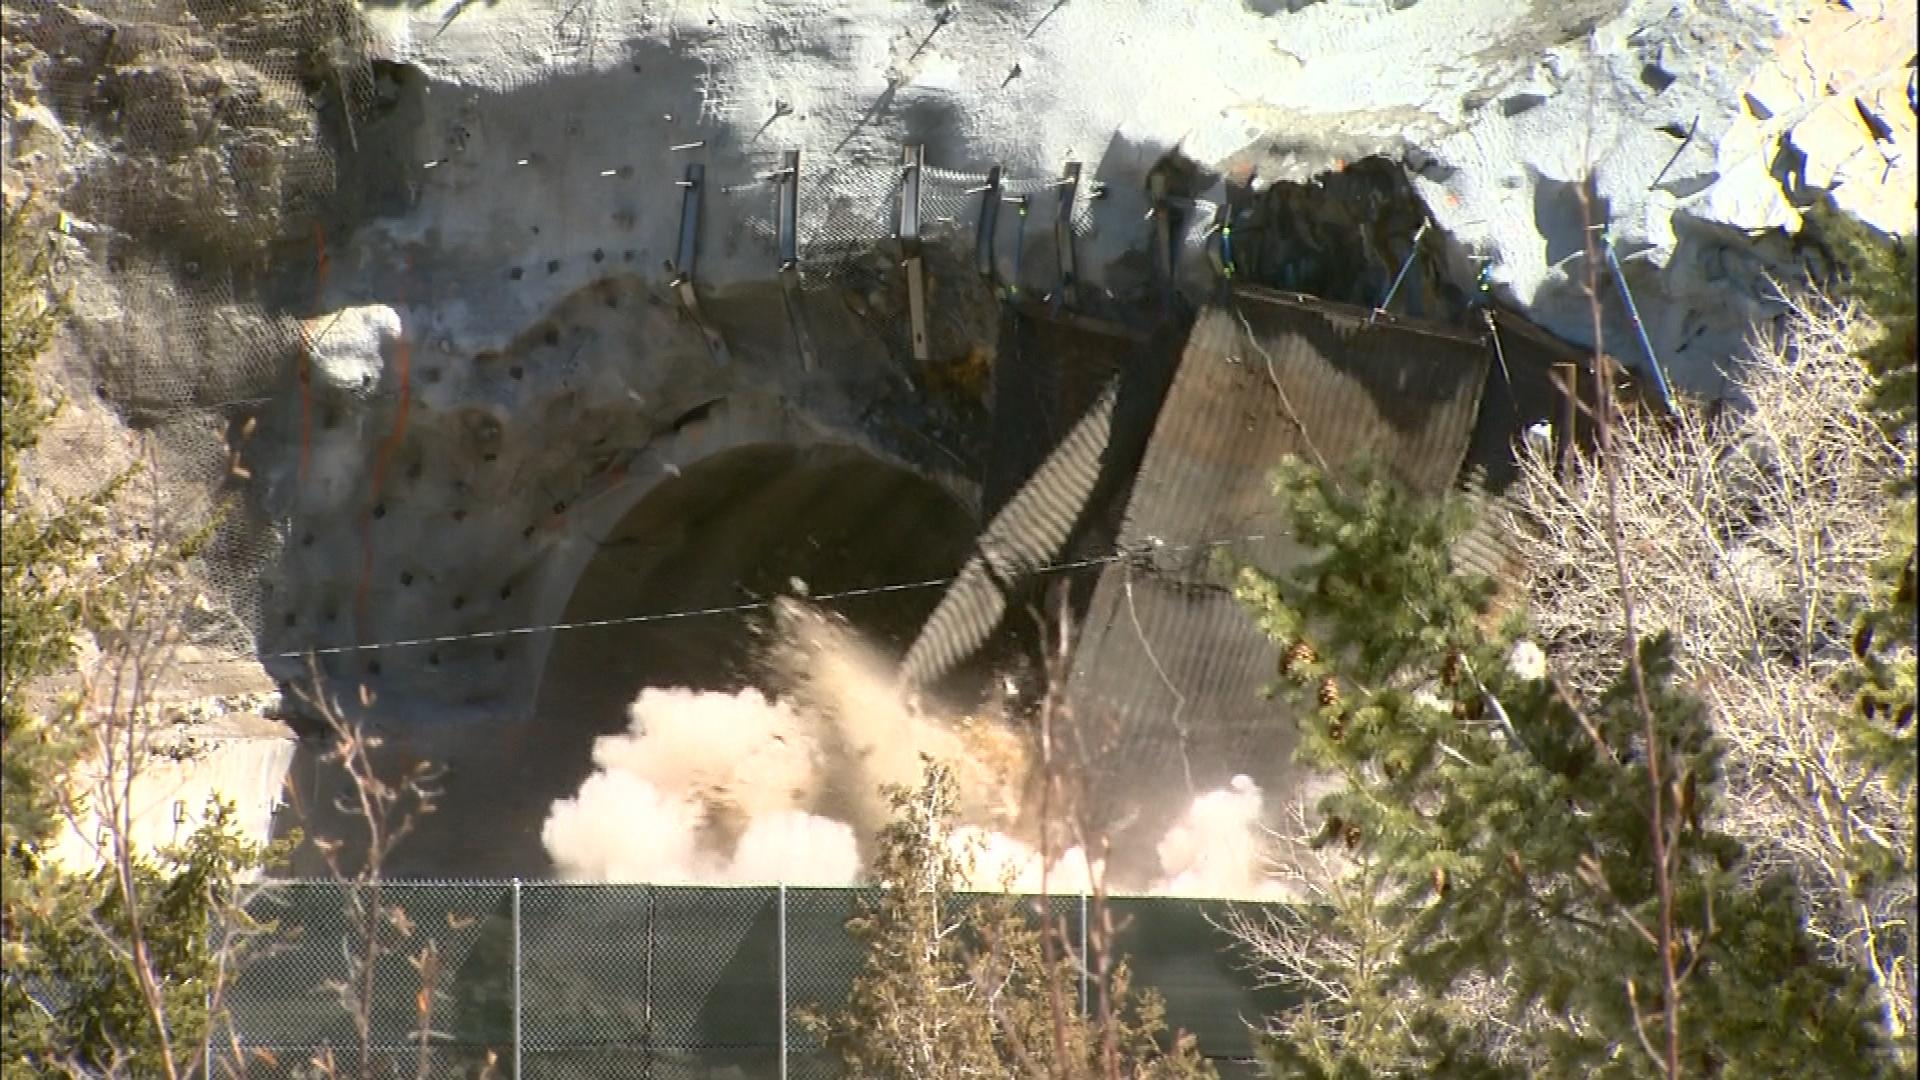 Blasting at the Twin Tunnels (credit: CBS)